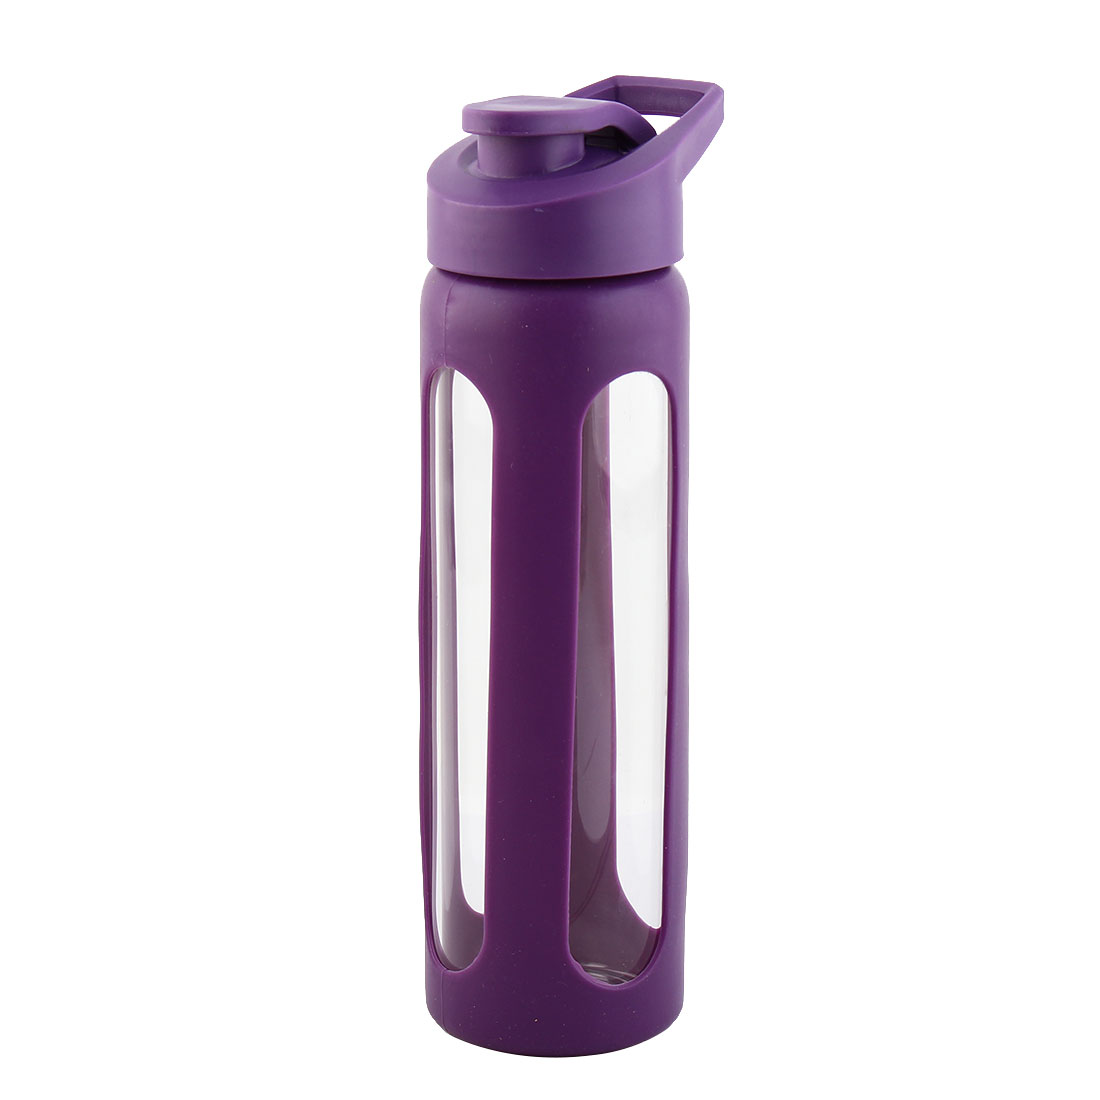 Silicone Sleeve Water Bottle Camping Cup Portable Driking Mug Cycling Driving Canteen Hiking Kettle Purple 550ml